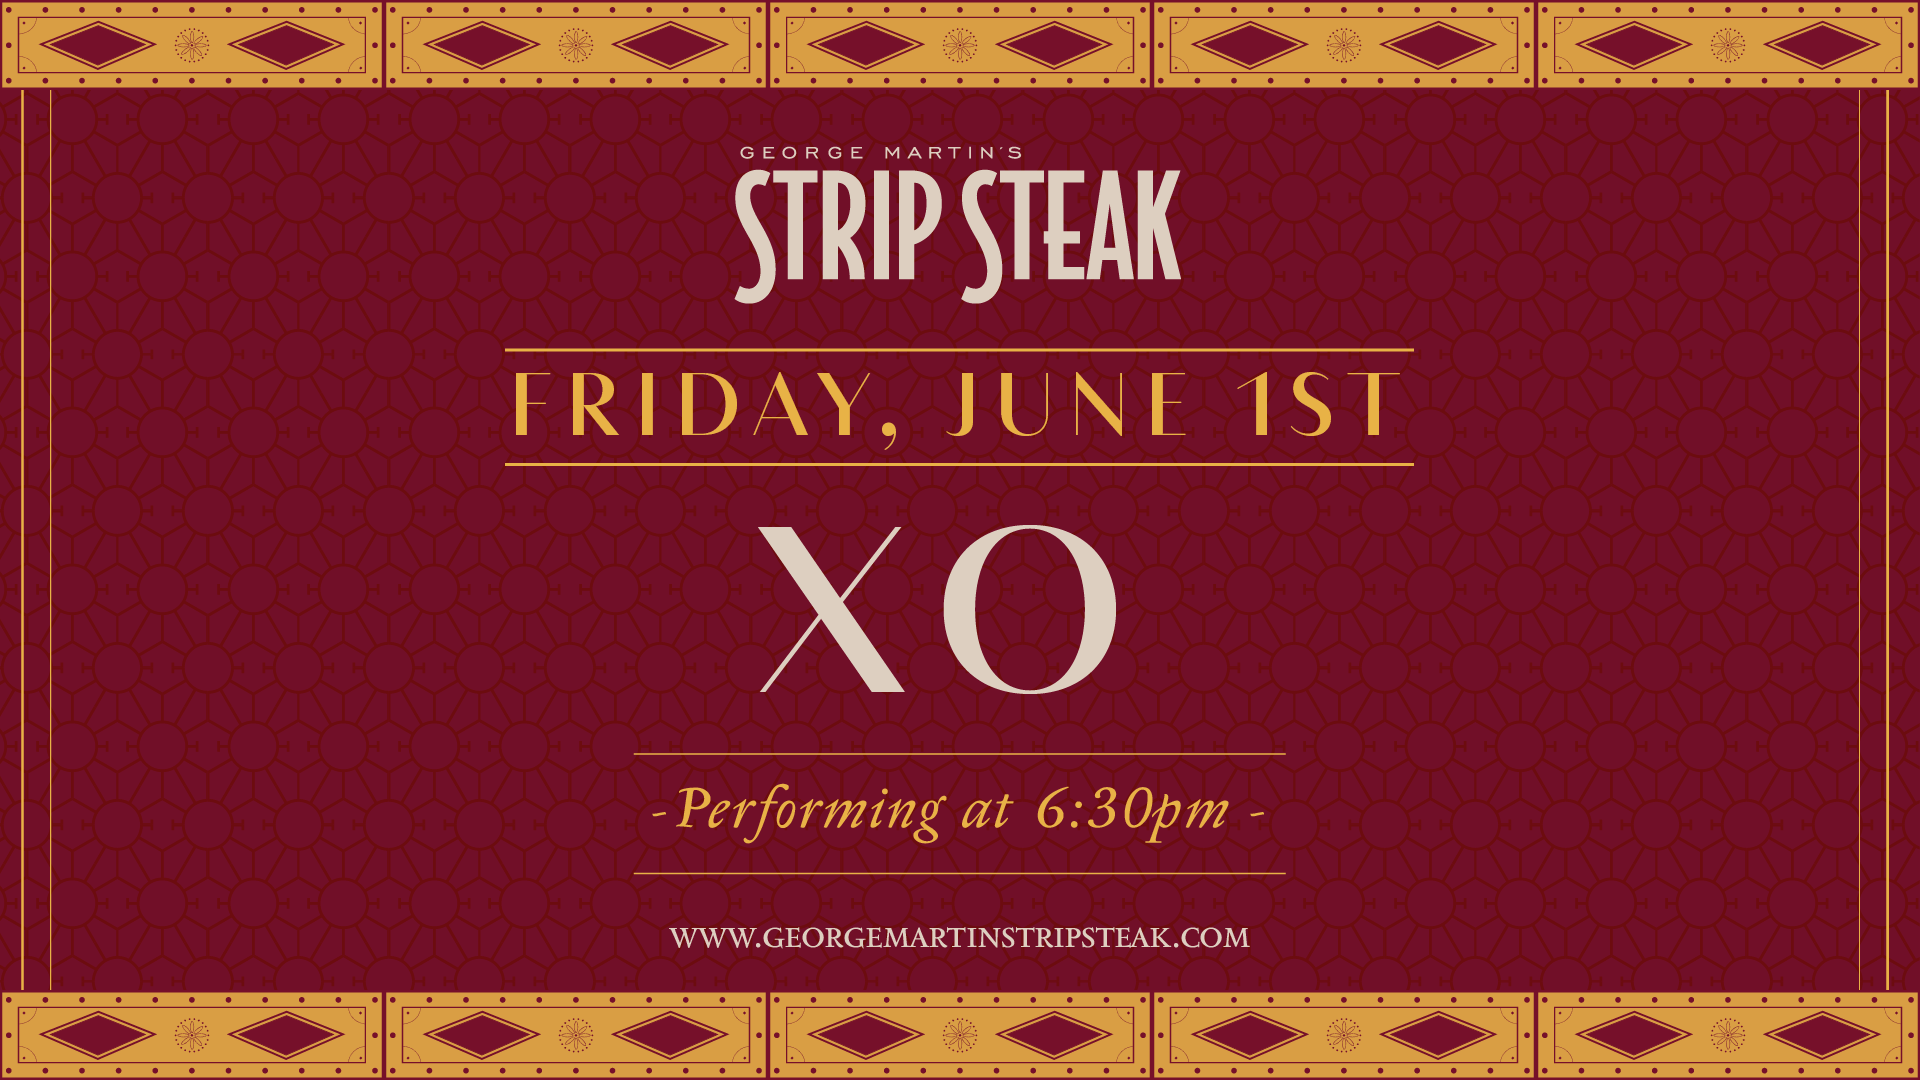 Flyer for live music with XO on June 1st at 6:30pm.